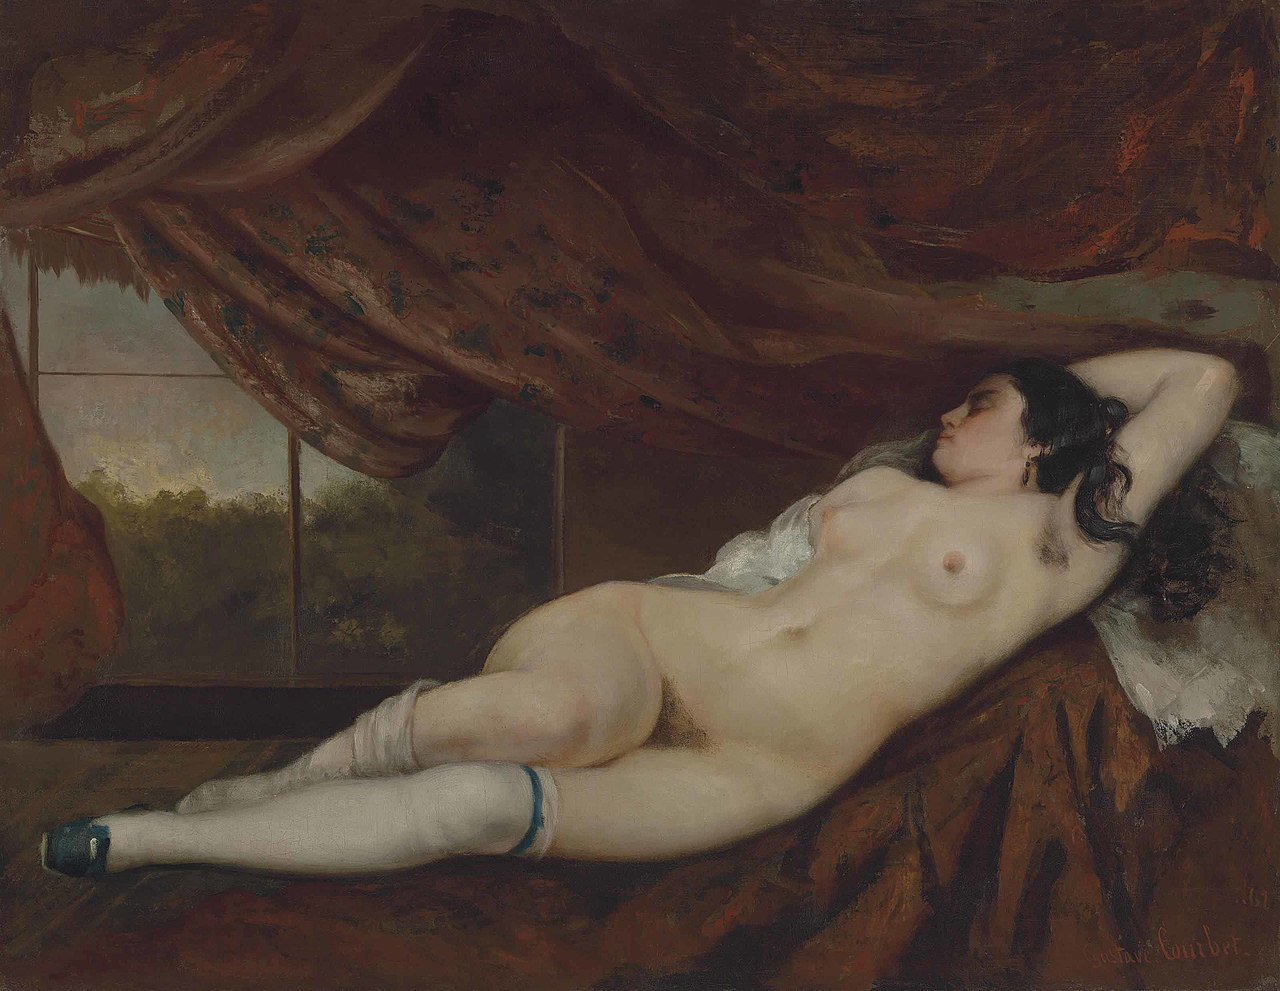 http://upload.wikimedia.org/wikipedia/commons/thumb/1/1a/Gustave_Courbet%2C_Femme_nue_couch%C3%A9e%2C_1862.jpg/1280px-Gustave_Courbet%2C_Femme_nue_couch%C3%A9e%2C_1862.jpg